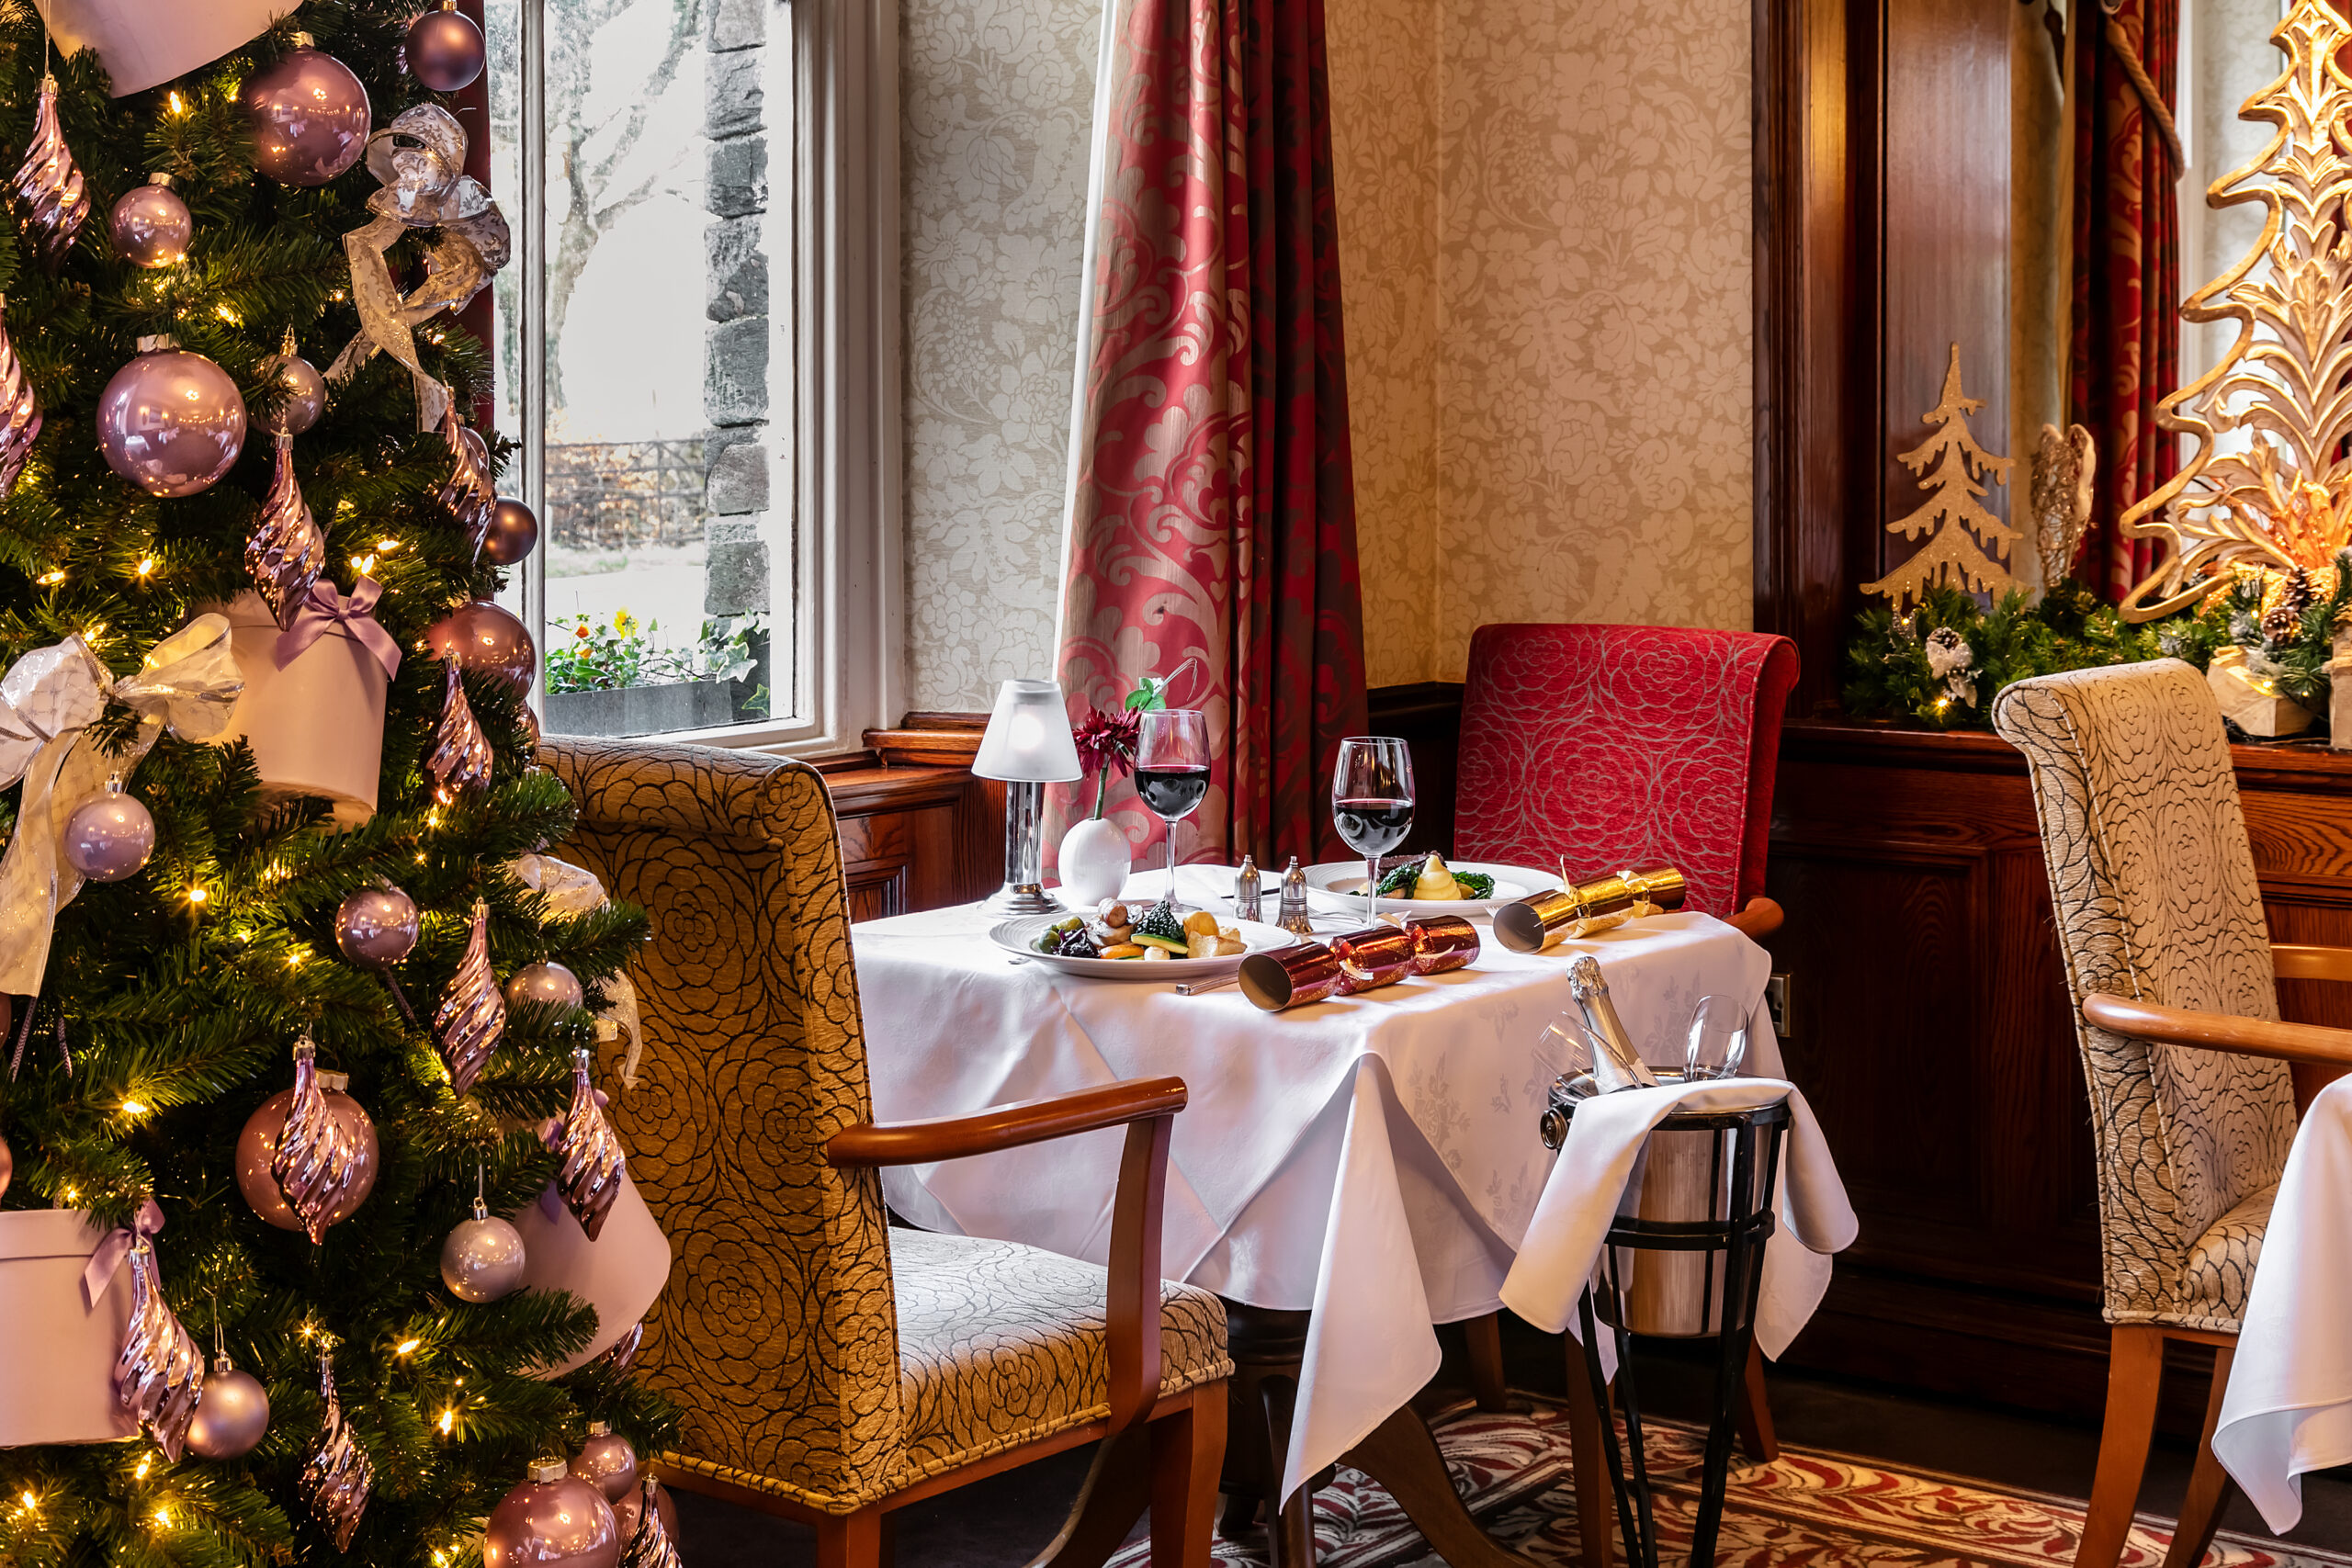 Festive Lunches at the Borrowdale Hotel